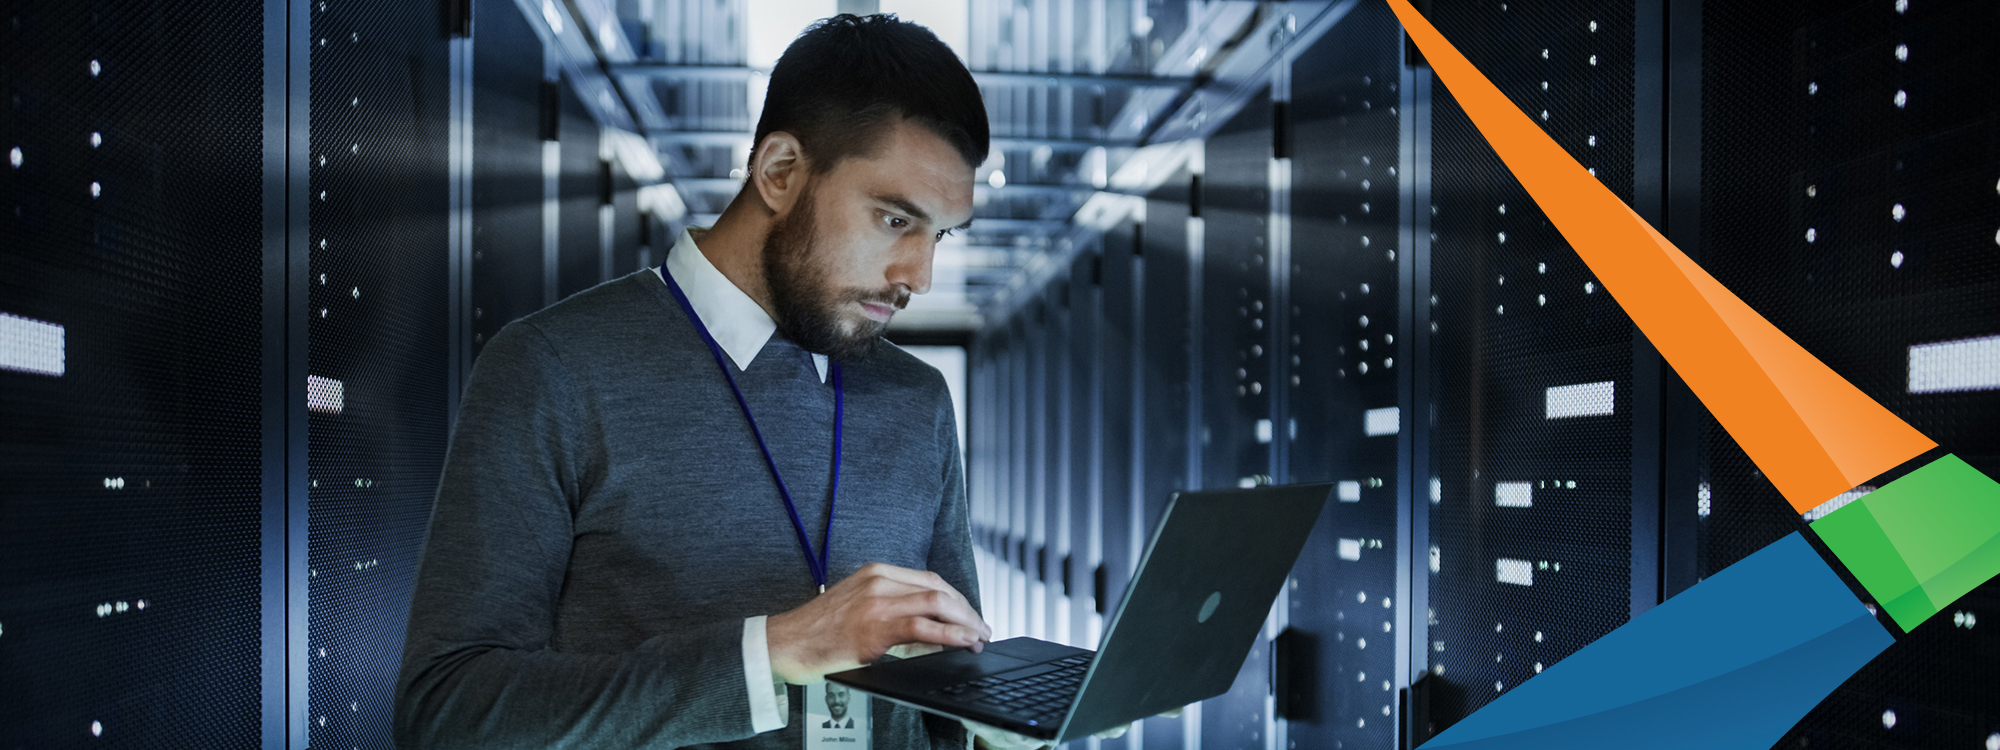 man with beard in server room on laptop